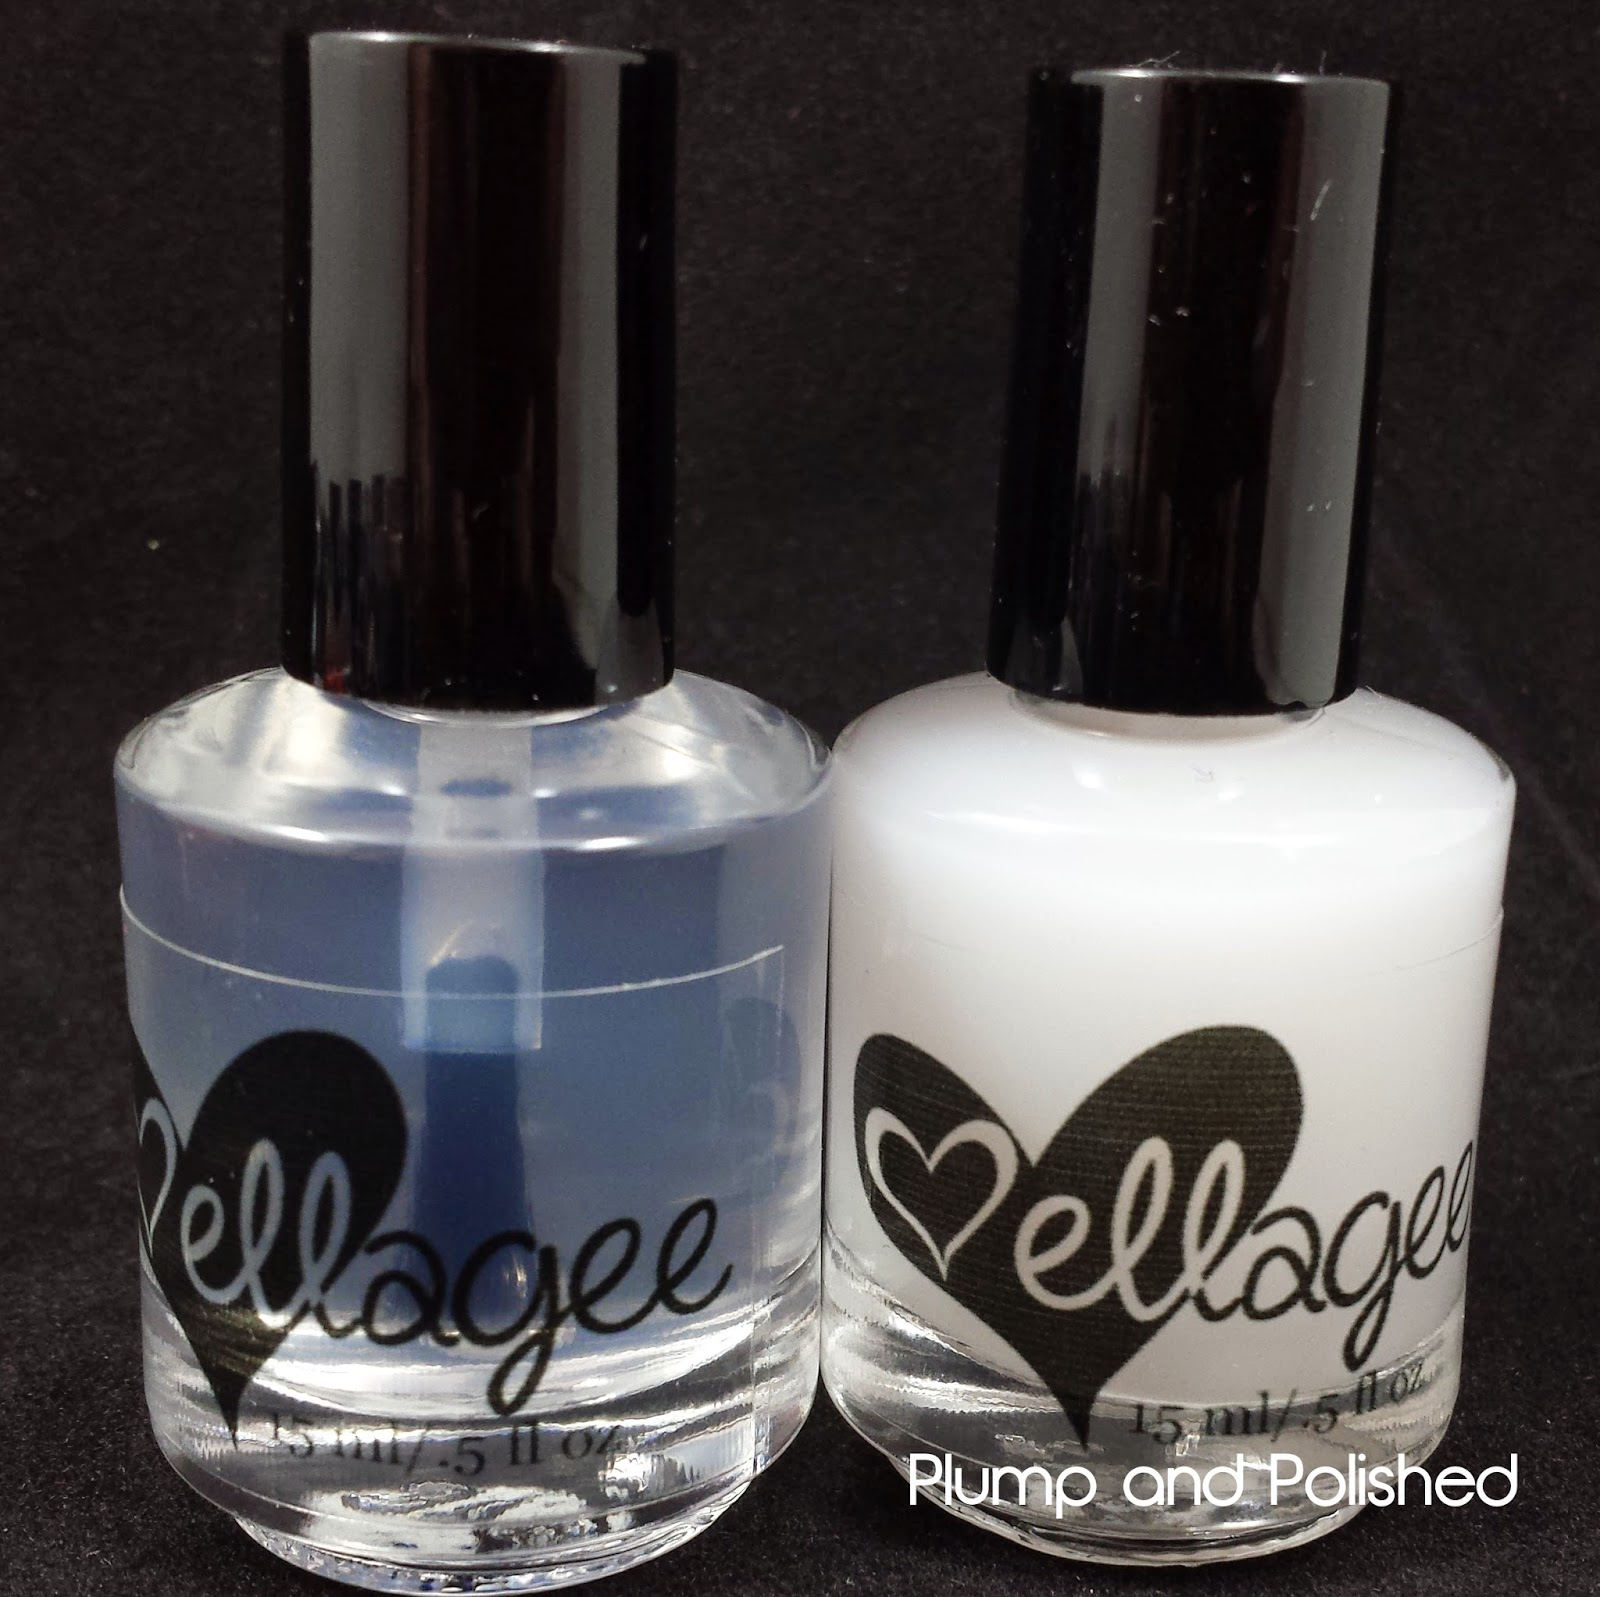 Ellagee - Glass and Velvet Top Coat